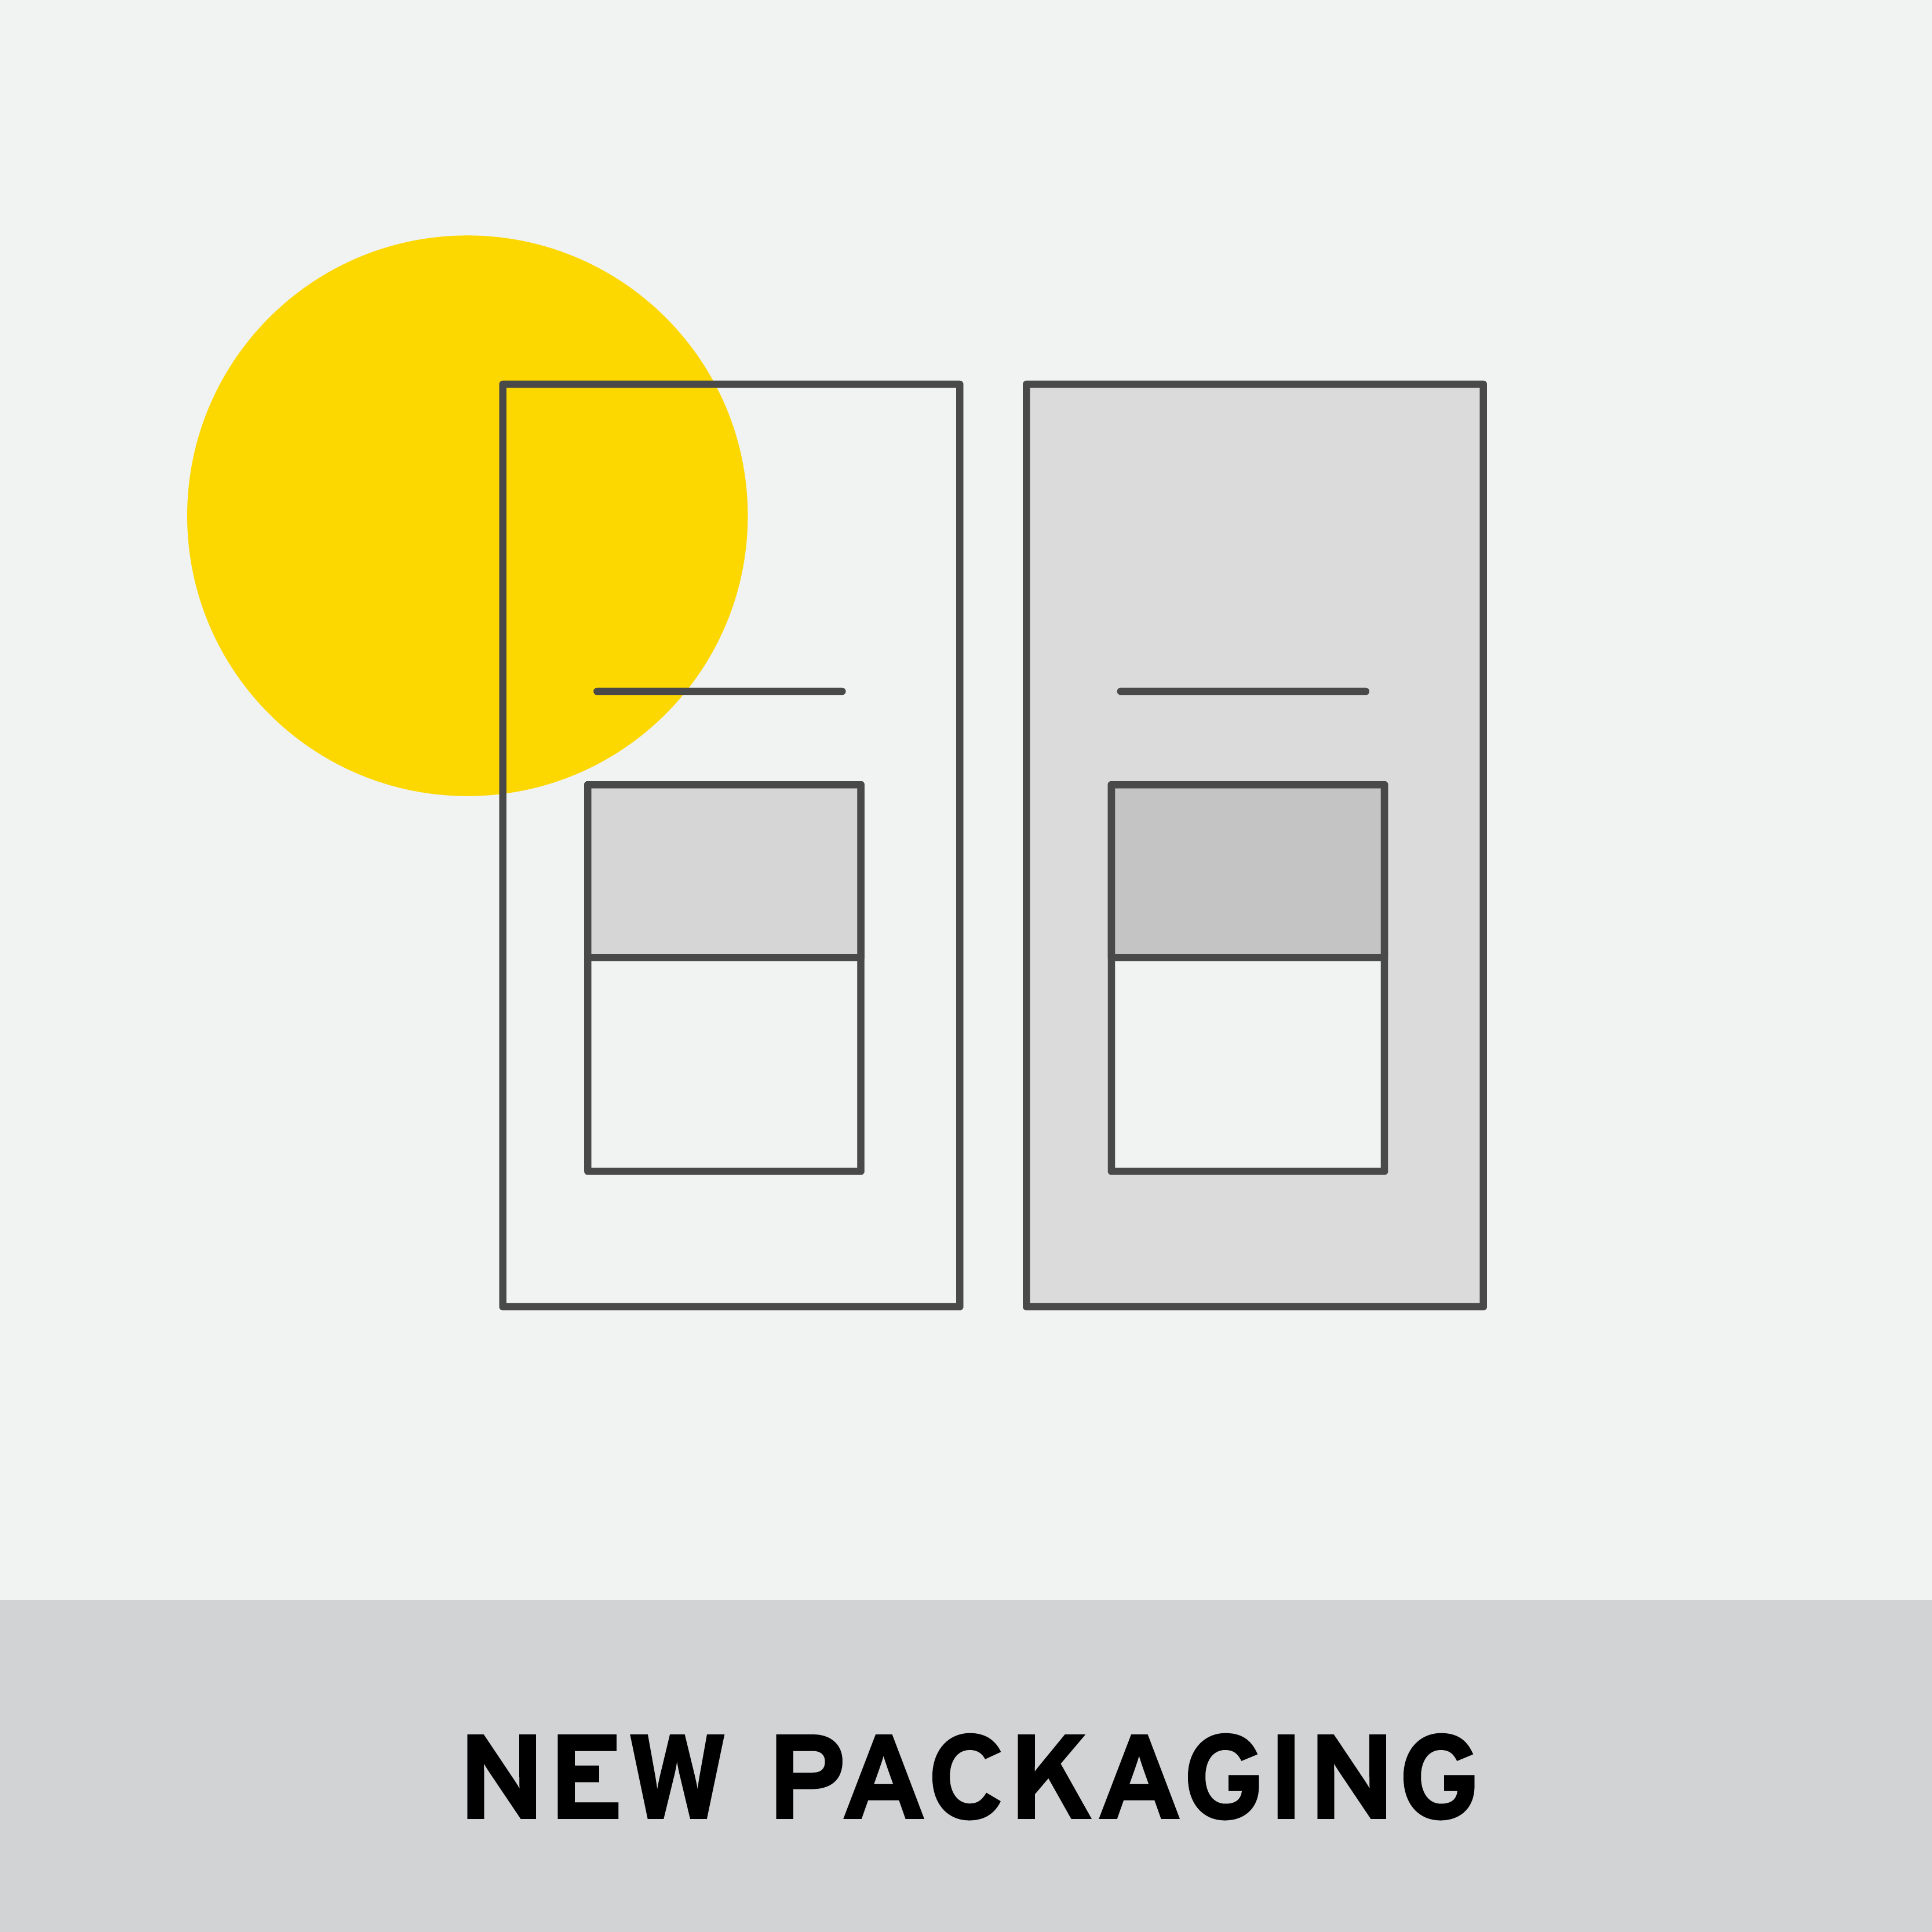 NEW PACKAGING